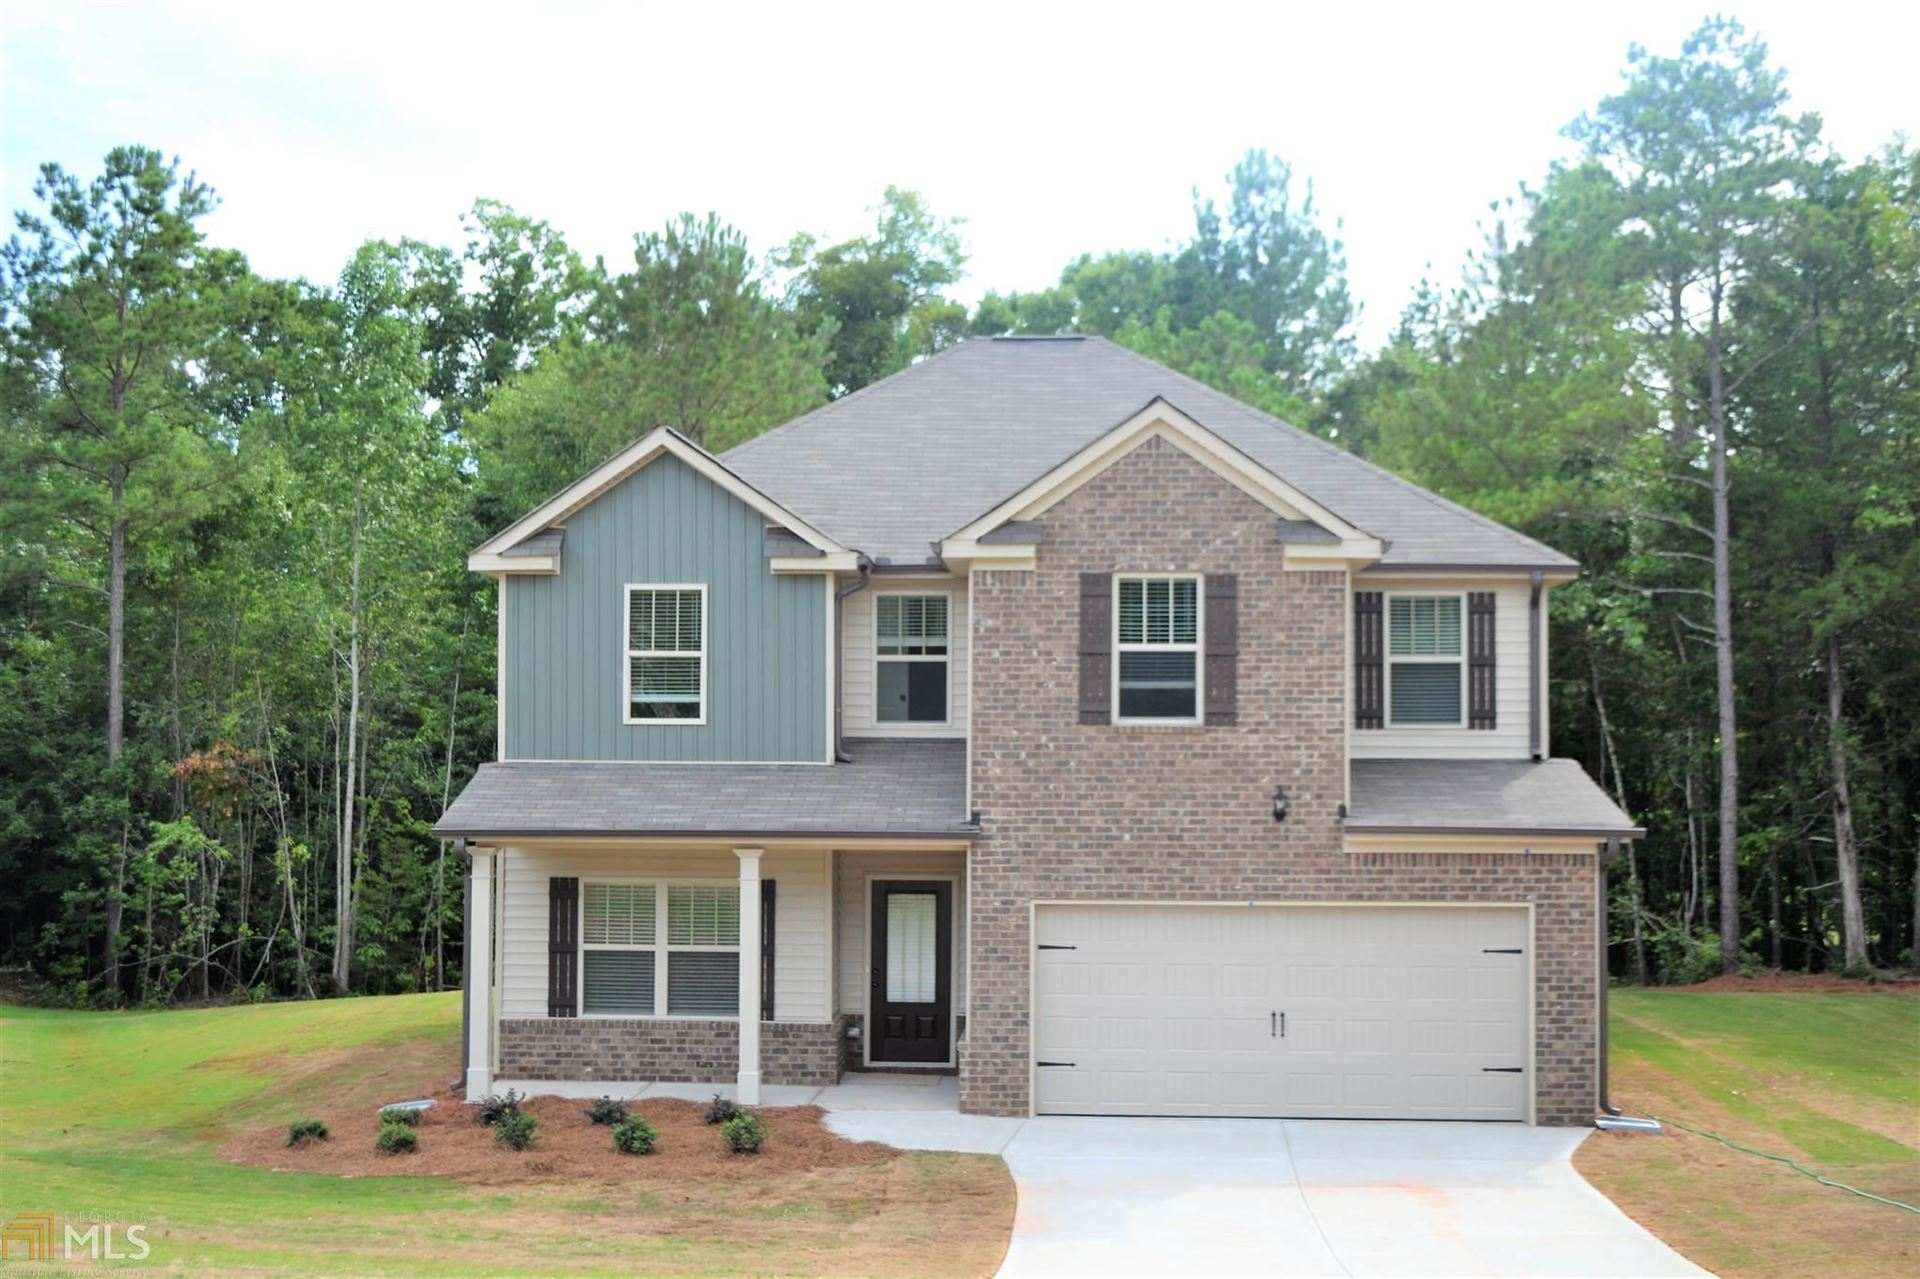 148 Clear Springs Dr, Jackson, GA 30233 - #: 8668723